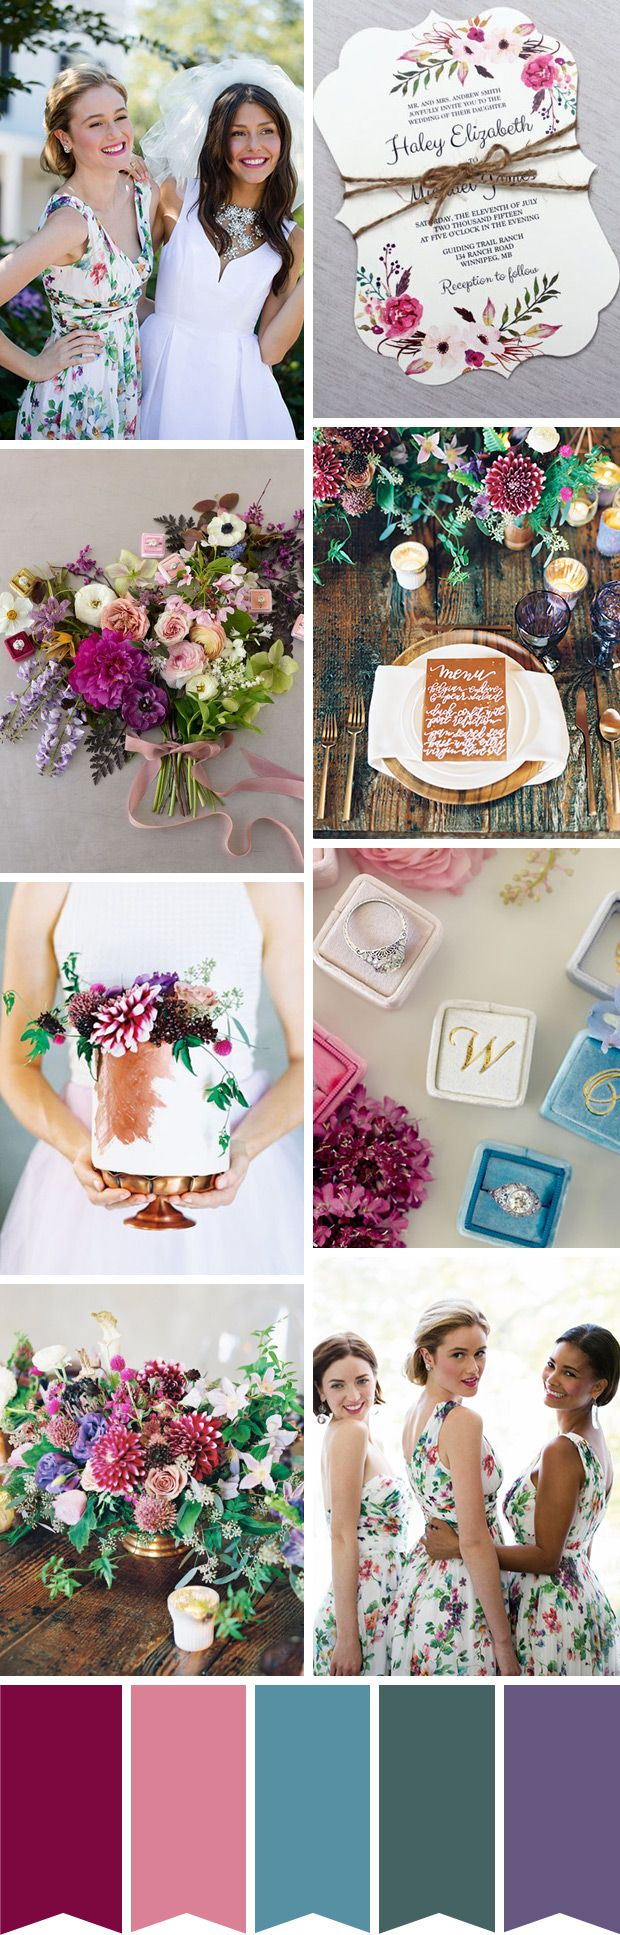 Jewel-tones and floral inspired wedding color palette // www.onefabday.com